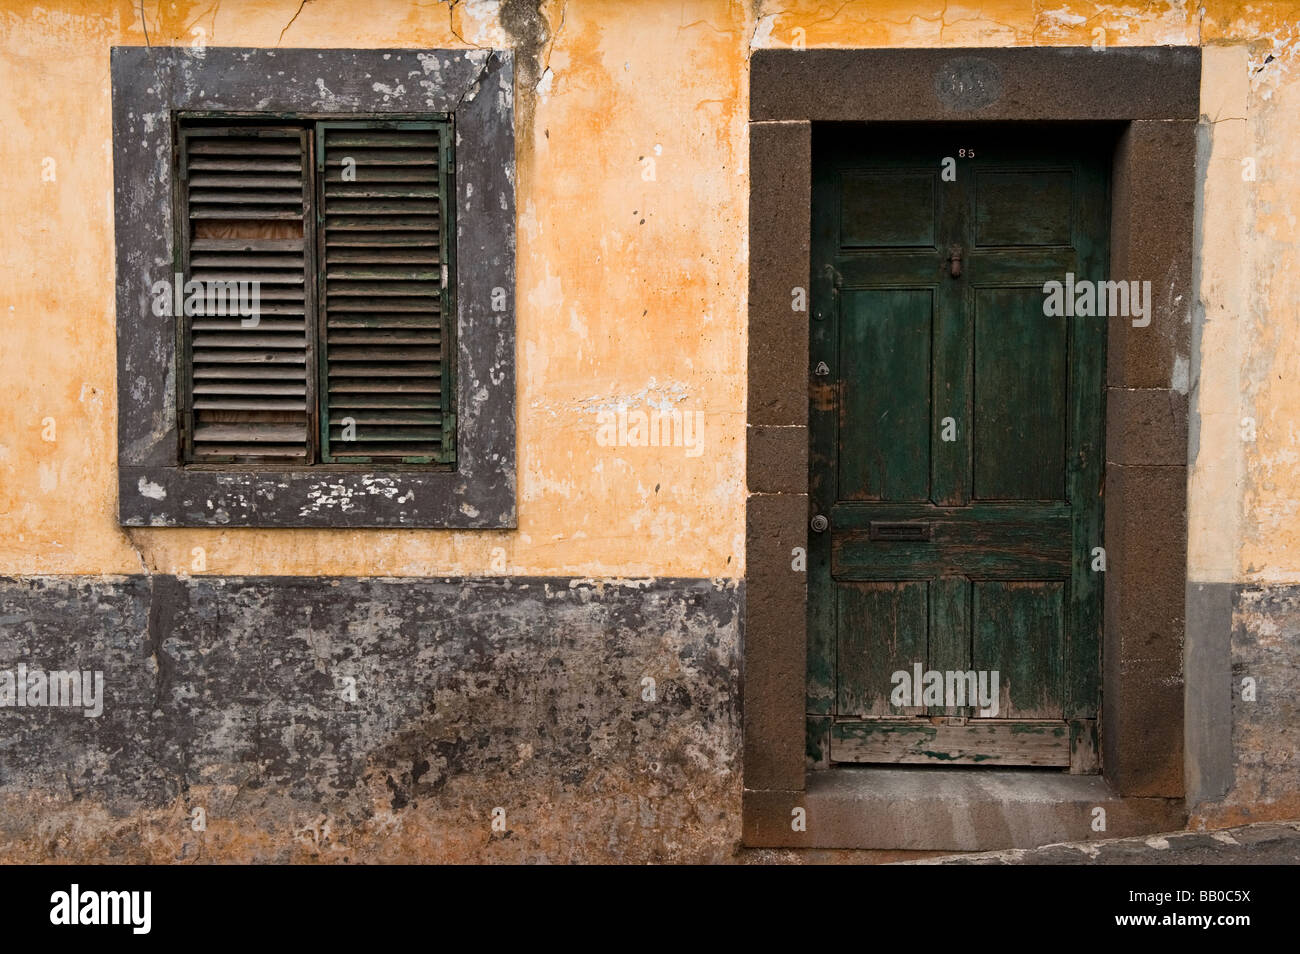 An old, dilapidated building in Funchal - Stock Image